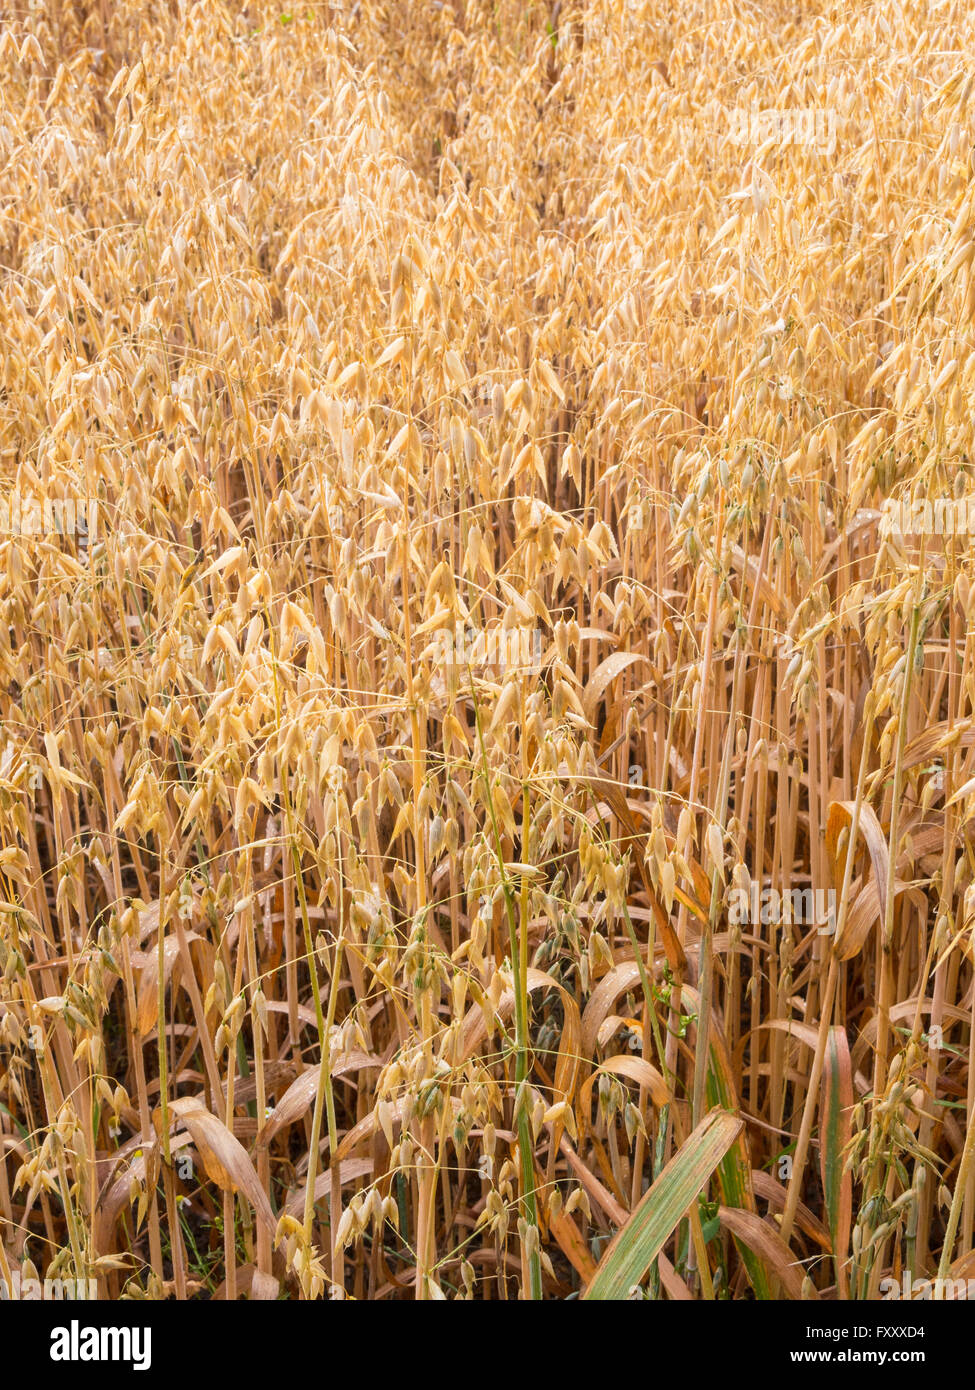 Oat field with morning dew - Stock Image